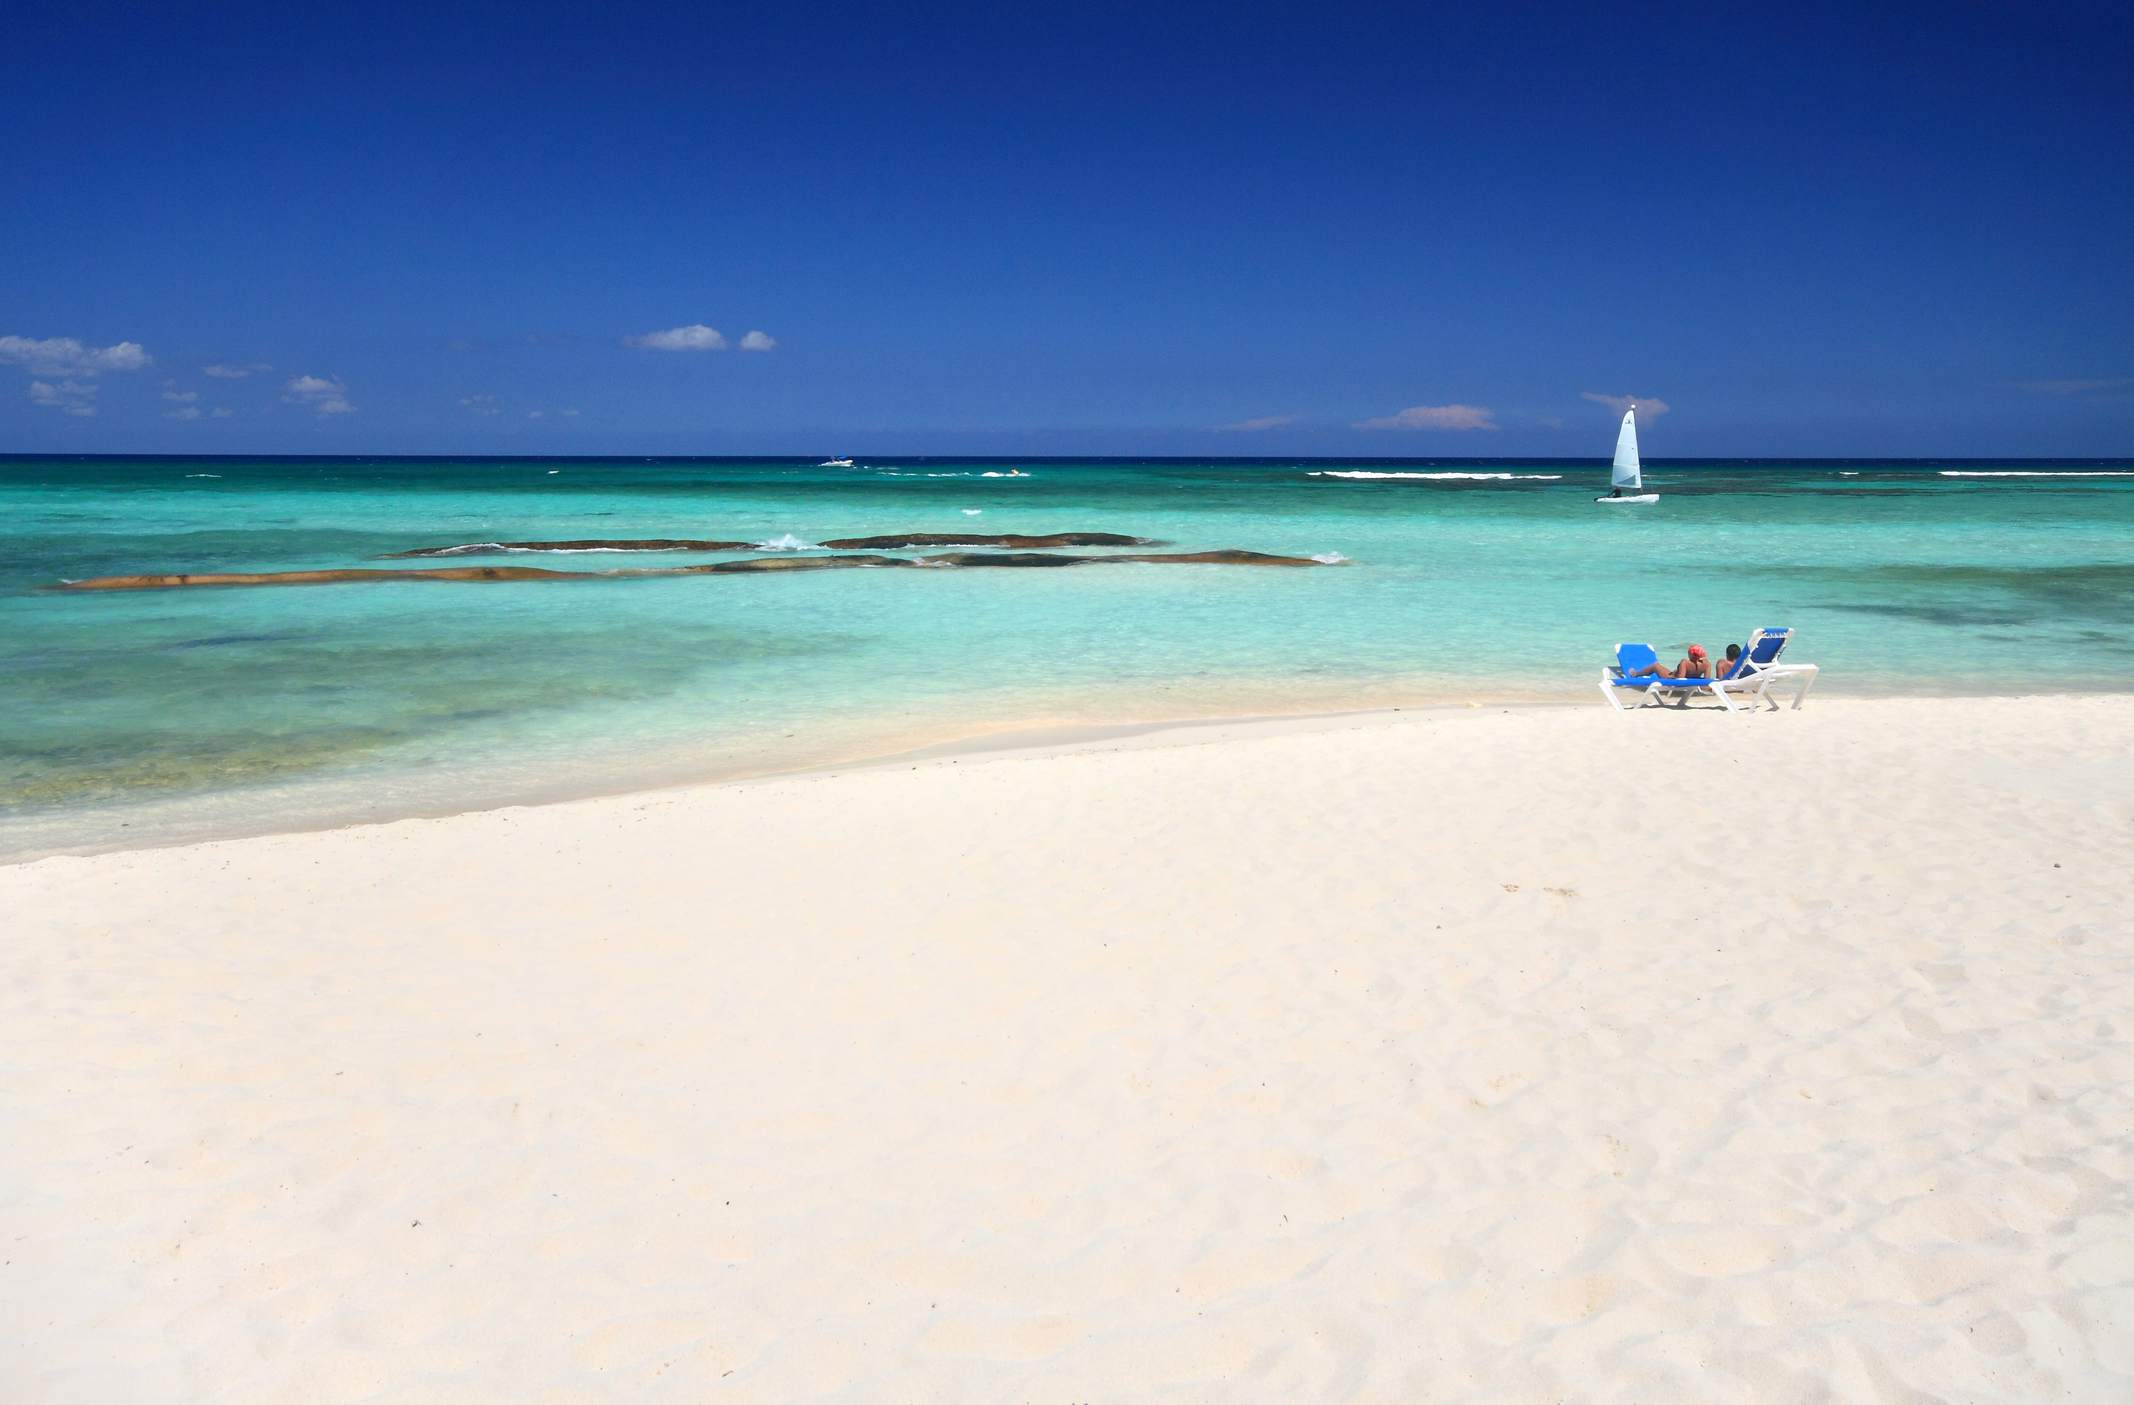 Amazing sand and beaches can be found in Mexico